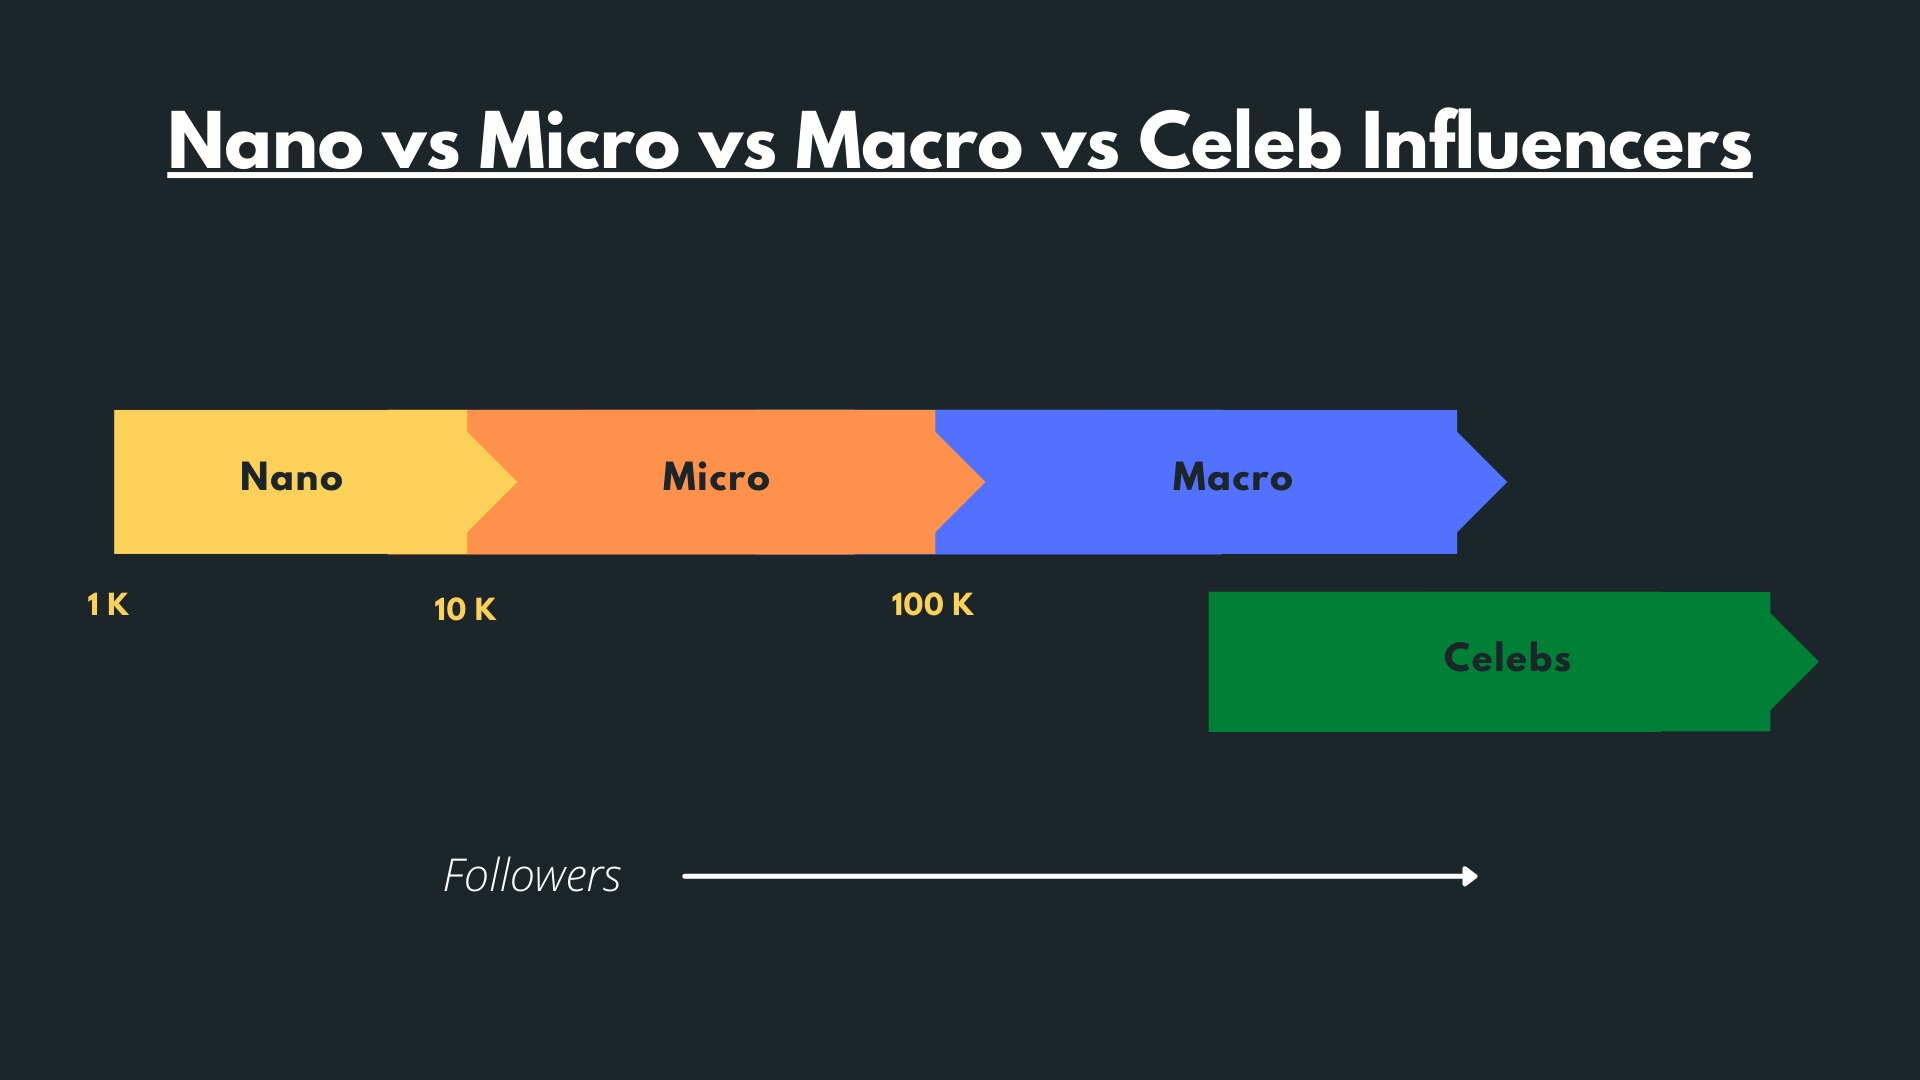 Winkl on Influencer Marketing - nano anf micro influencer